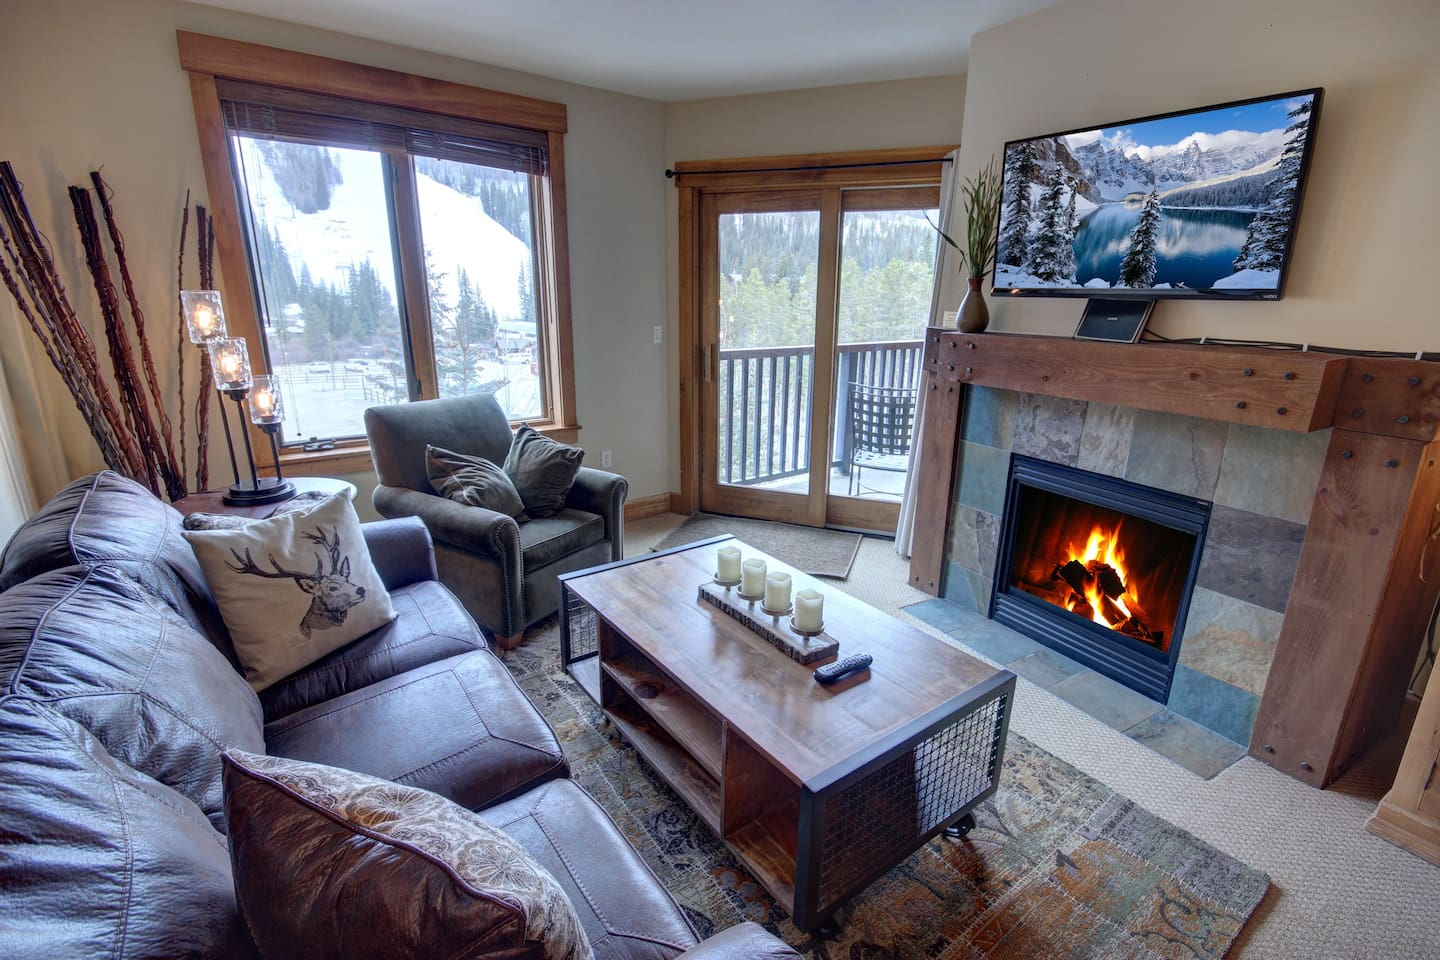 Big living room with TV and fireplace or cold days